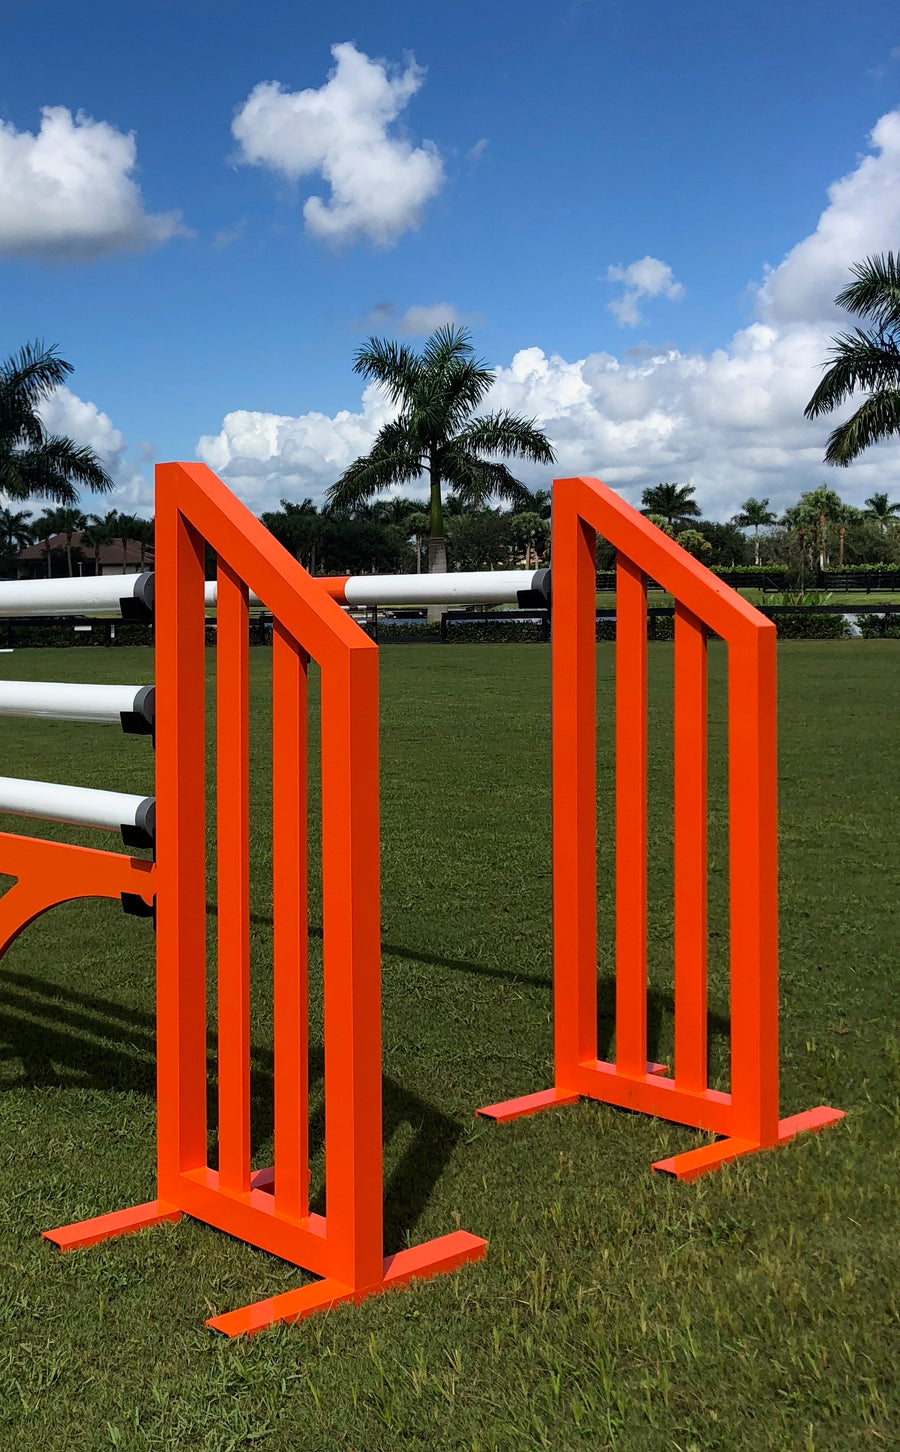 Aluminum Picket Standards from Dalman Jump Co. in red